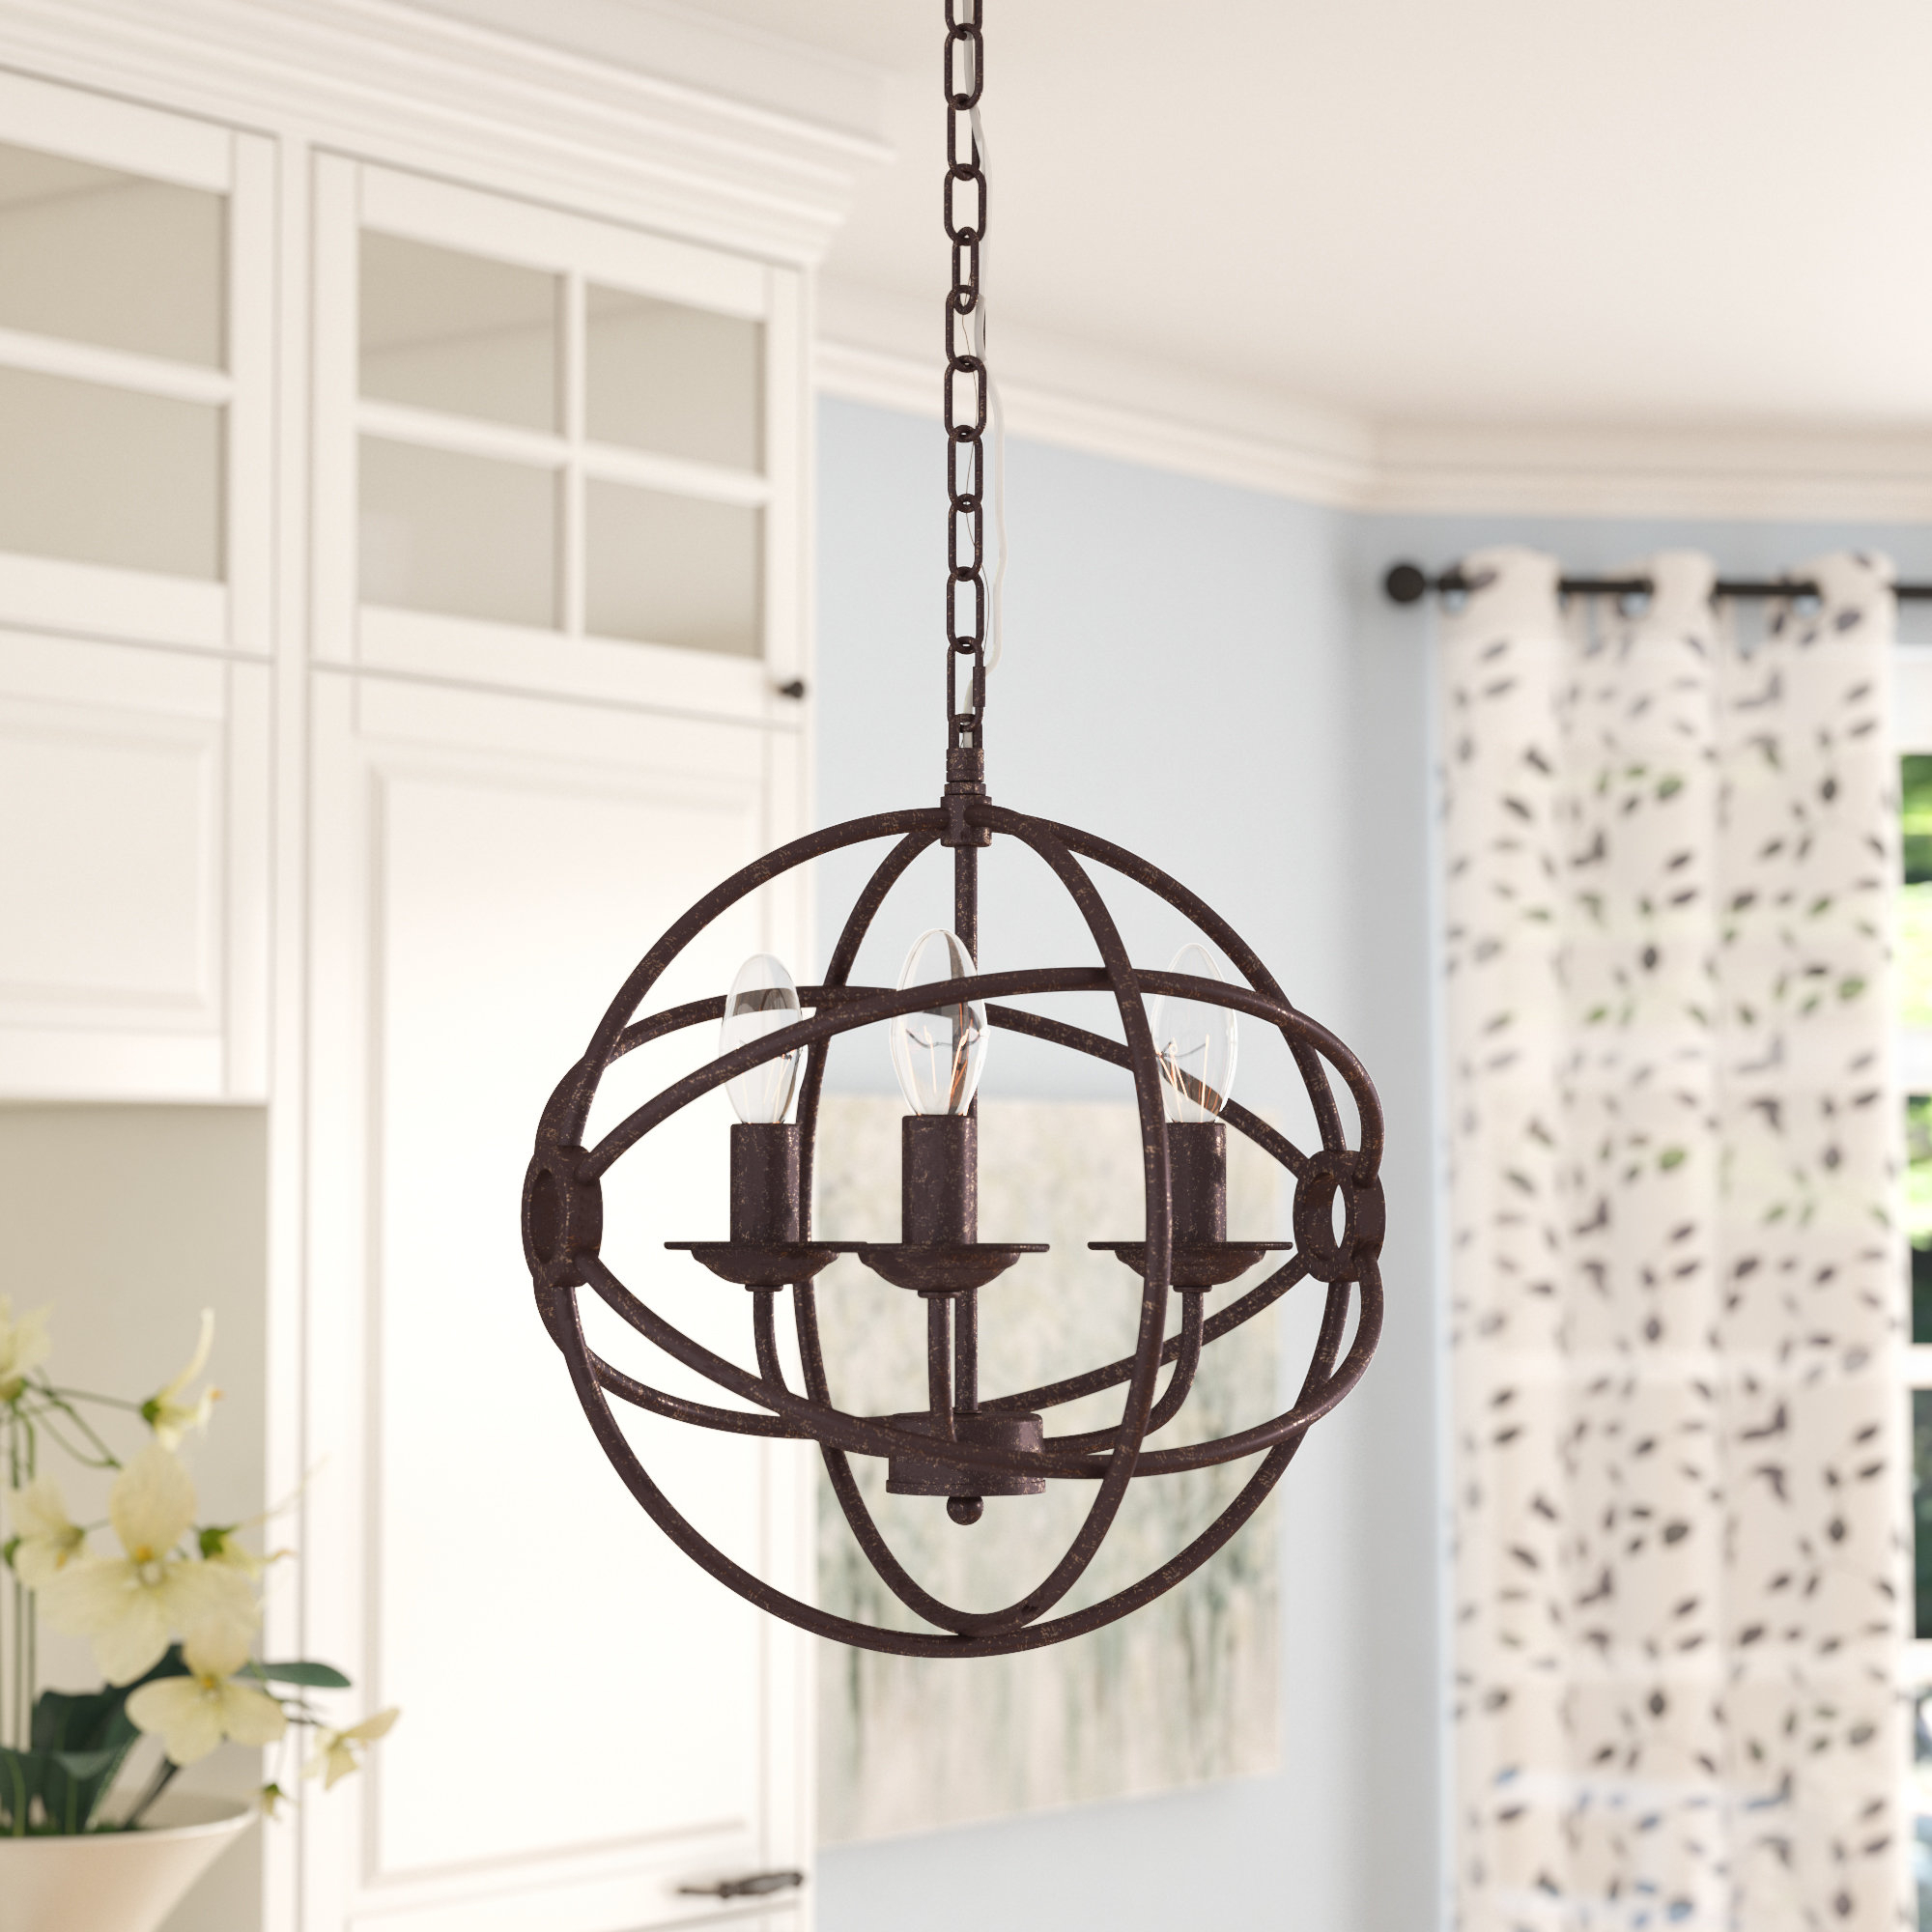 Globe Chandeliers Sale - Up To 65% Off Until September 30Th inside Waldron 5-Light Globe Chandeliers (Image 10 of 30)